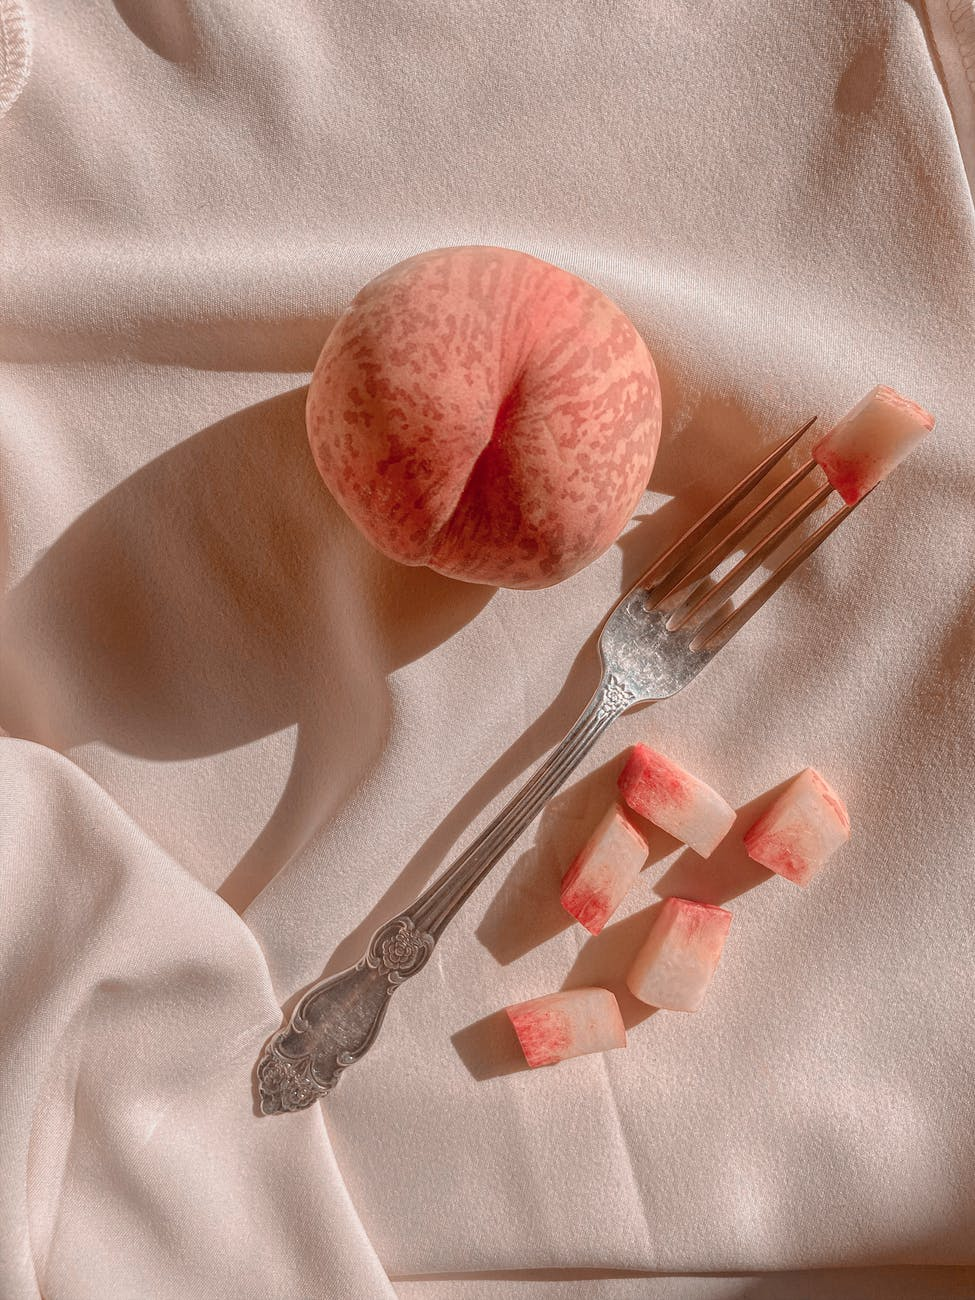 ripe peach with fork on draped fabric